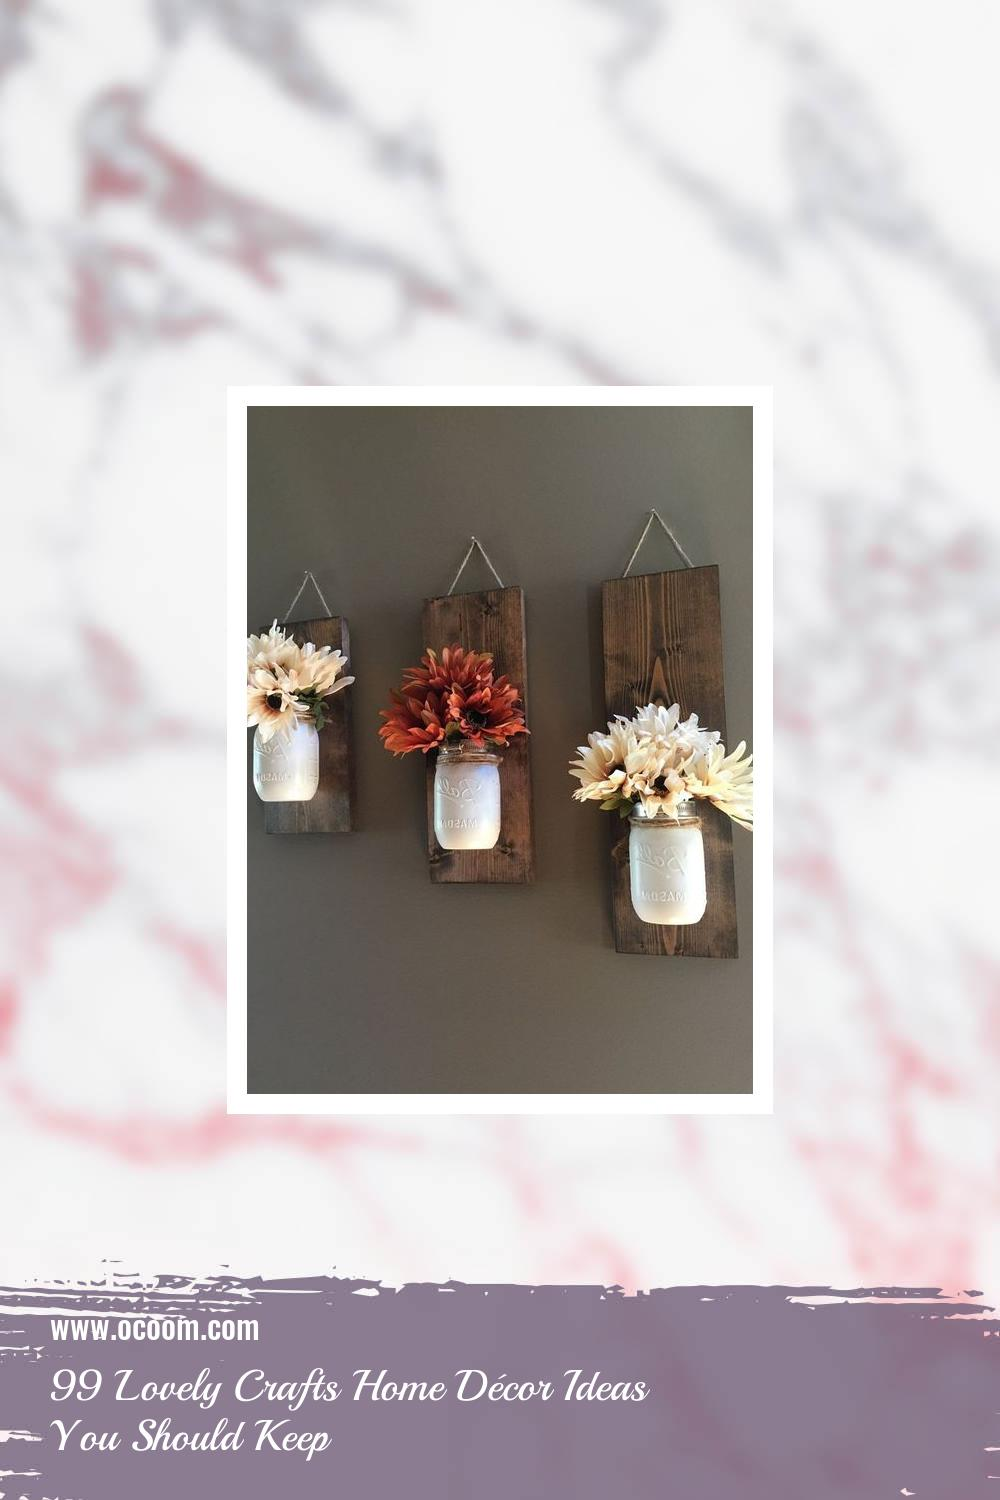 99 Lovely Crafts Home Décor Ideas You Should Keep 30